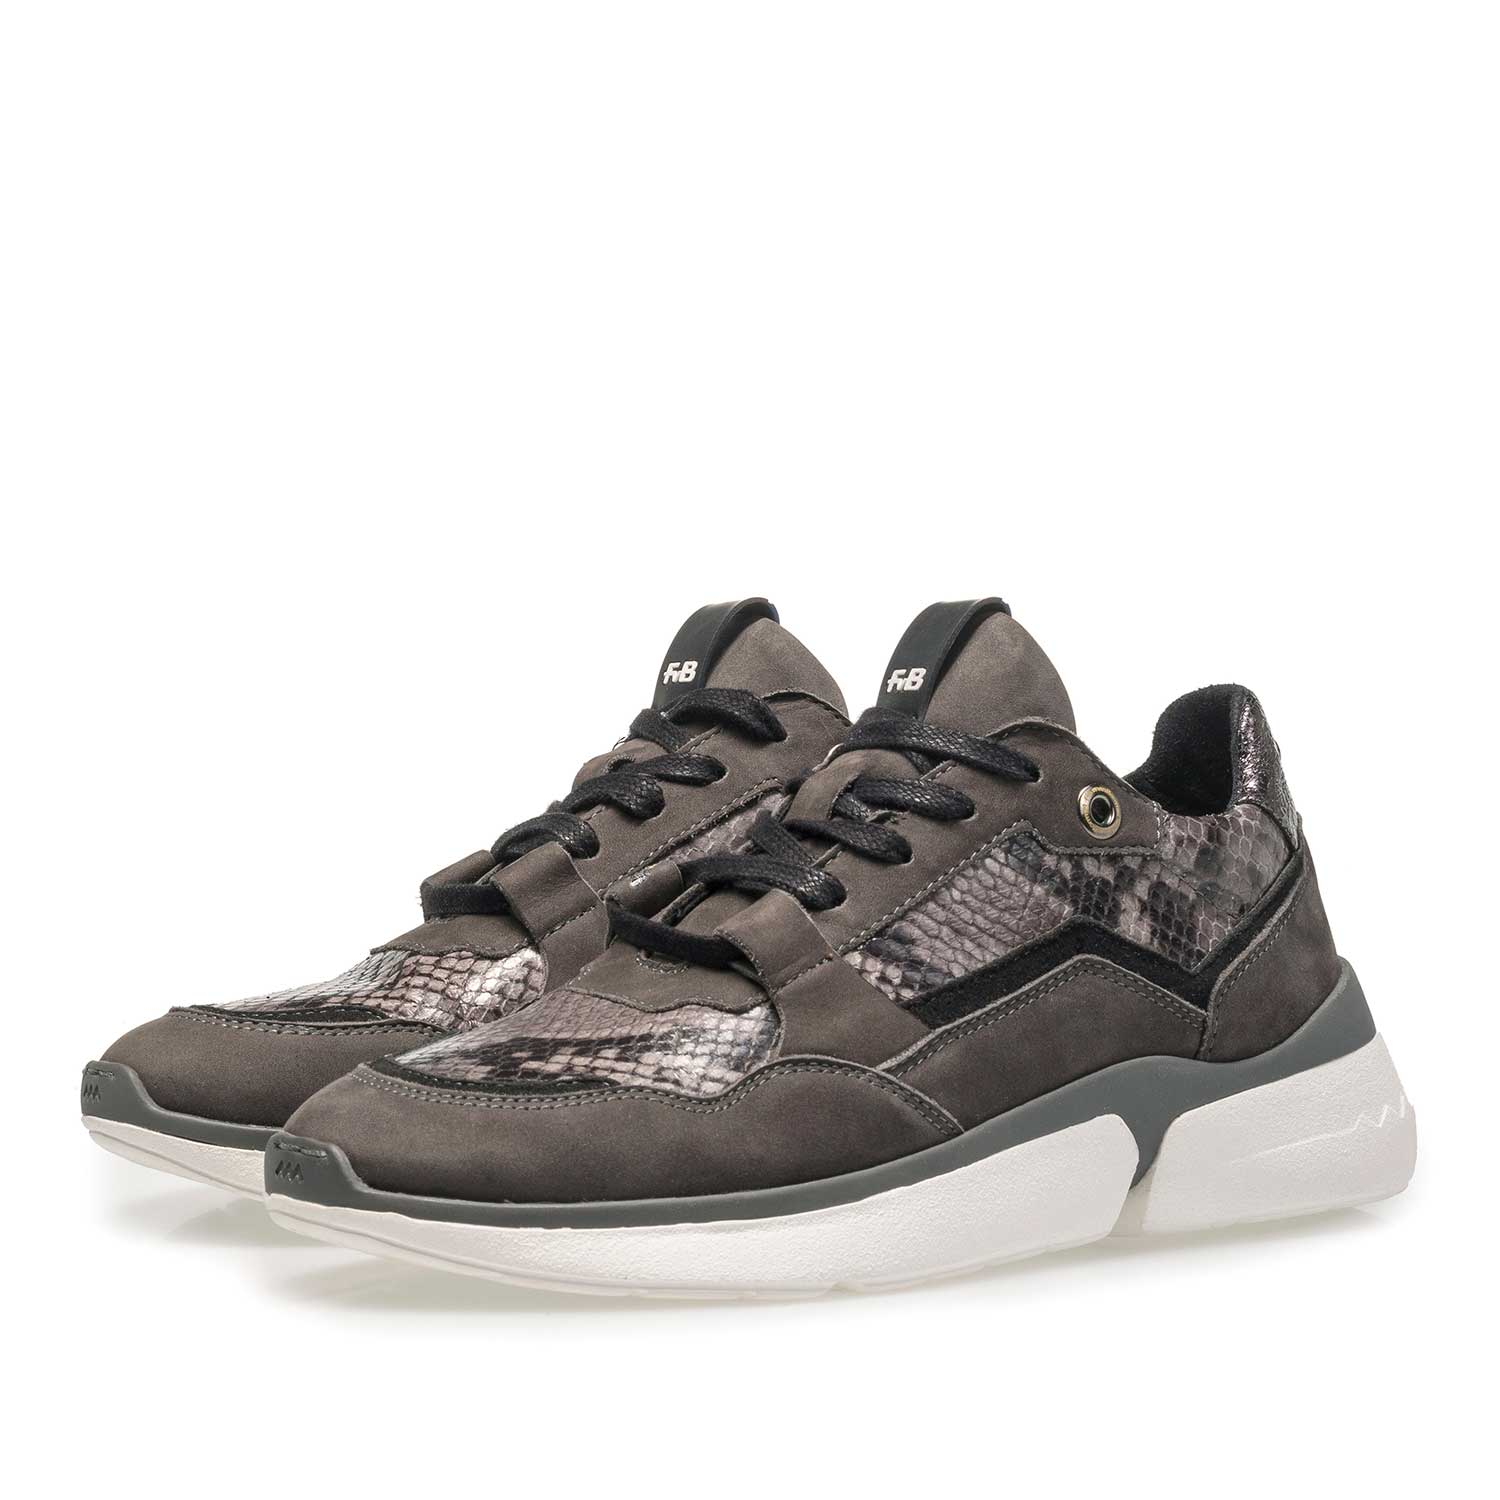 85291/01 - Dark grey suede leather sneaker with snake print